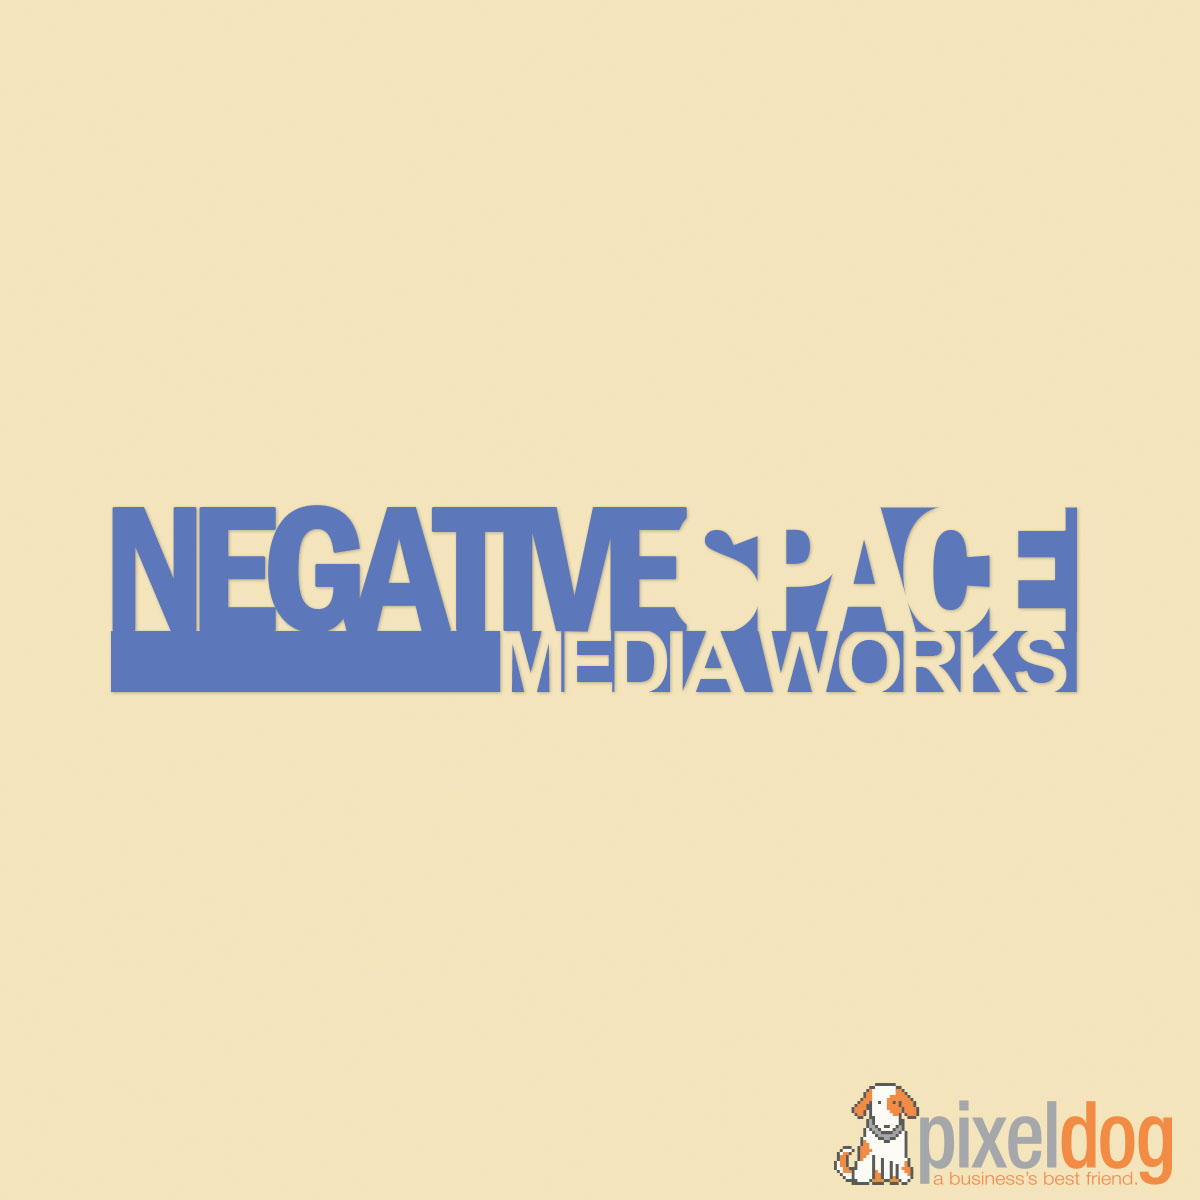 Negative Space Media Works (Company)